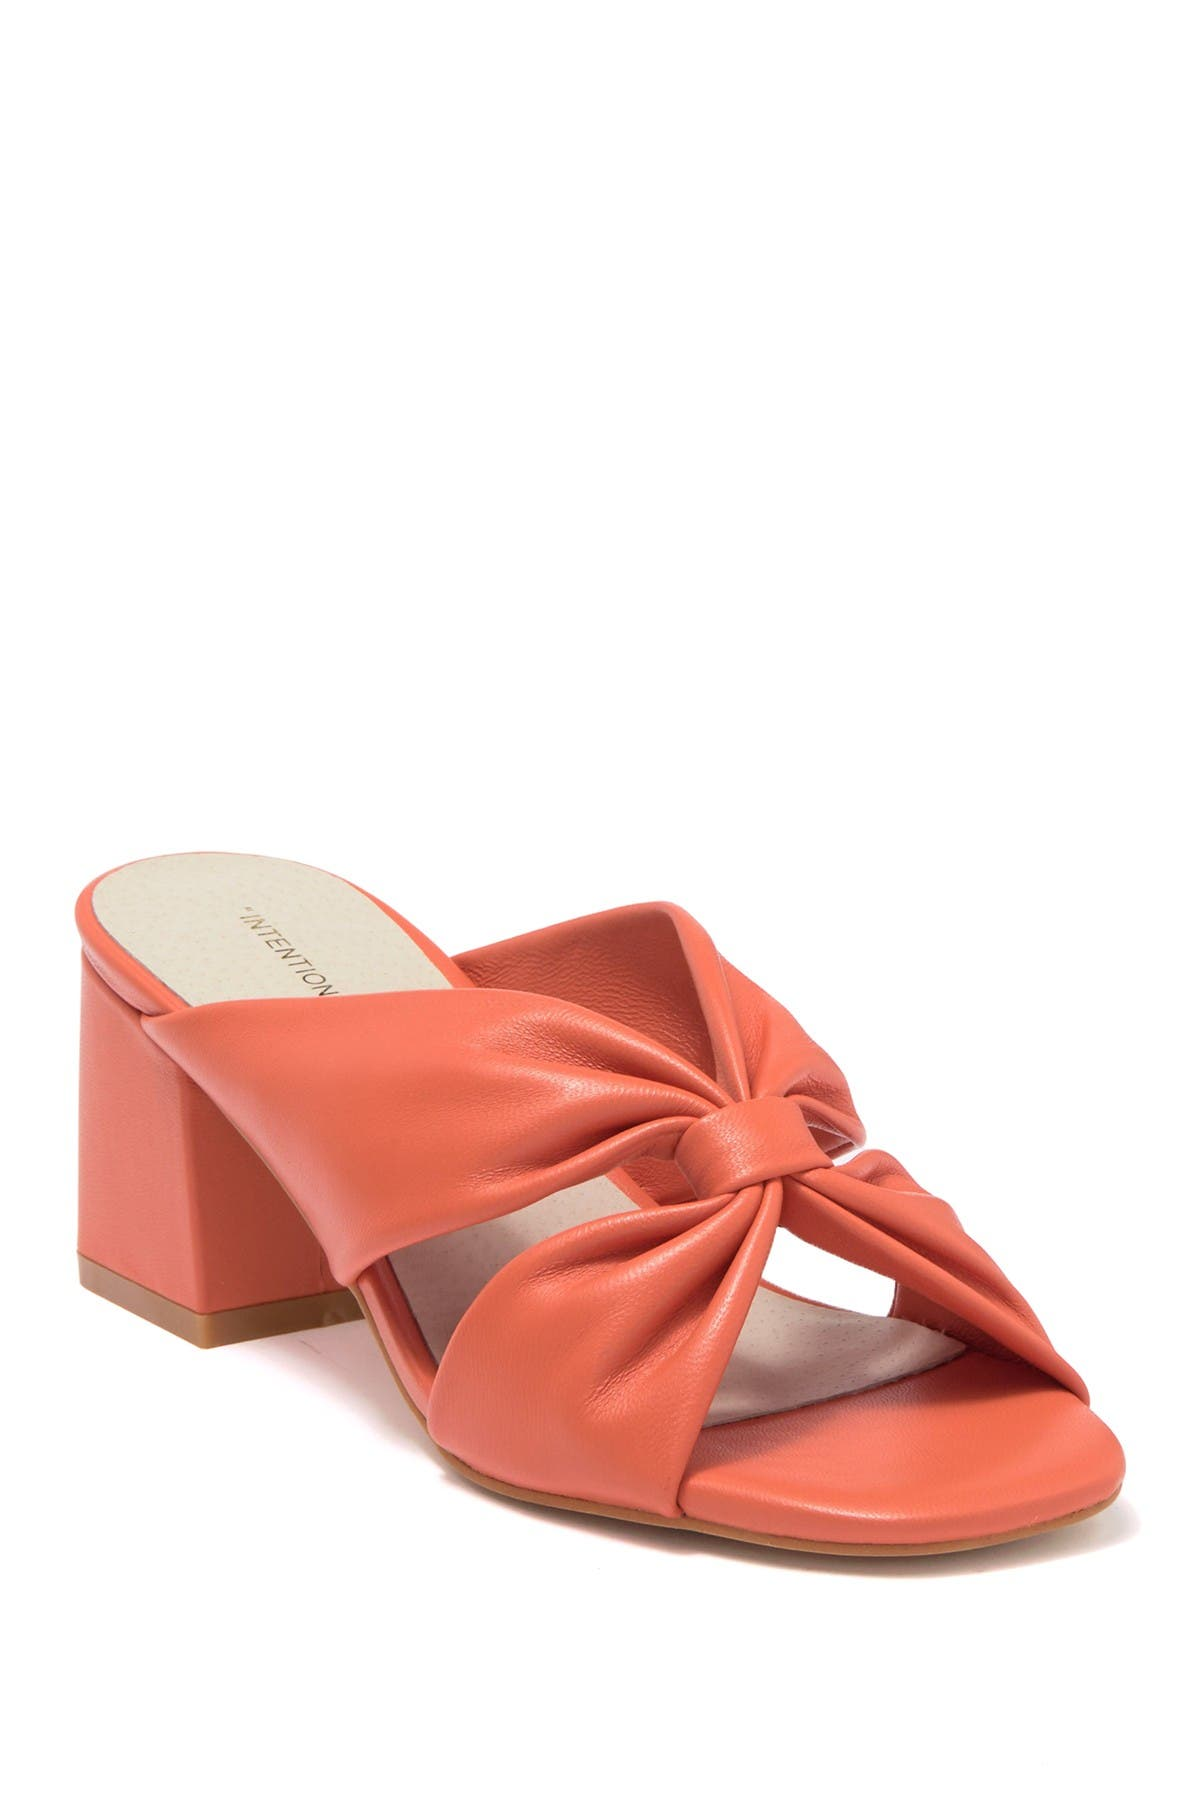 Image of Intentionally Blank Hannah Leather Block Heel Sandal